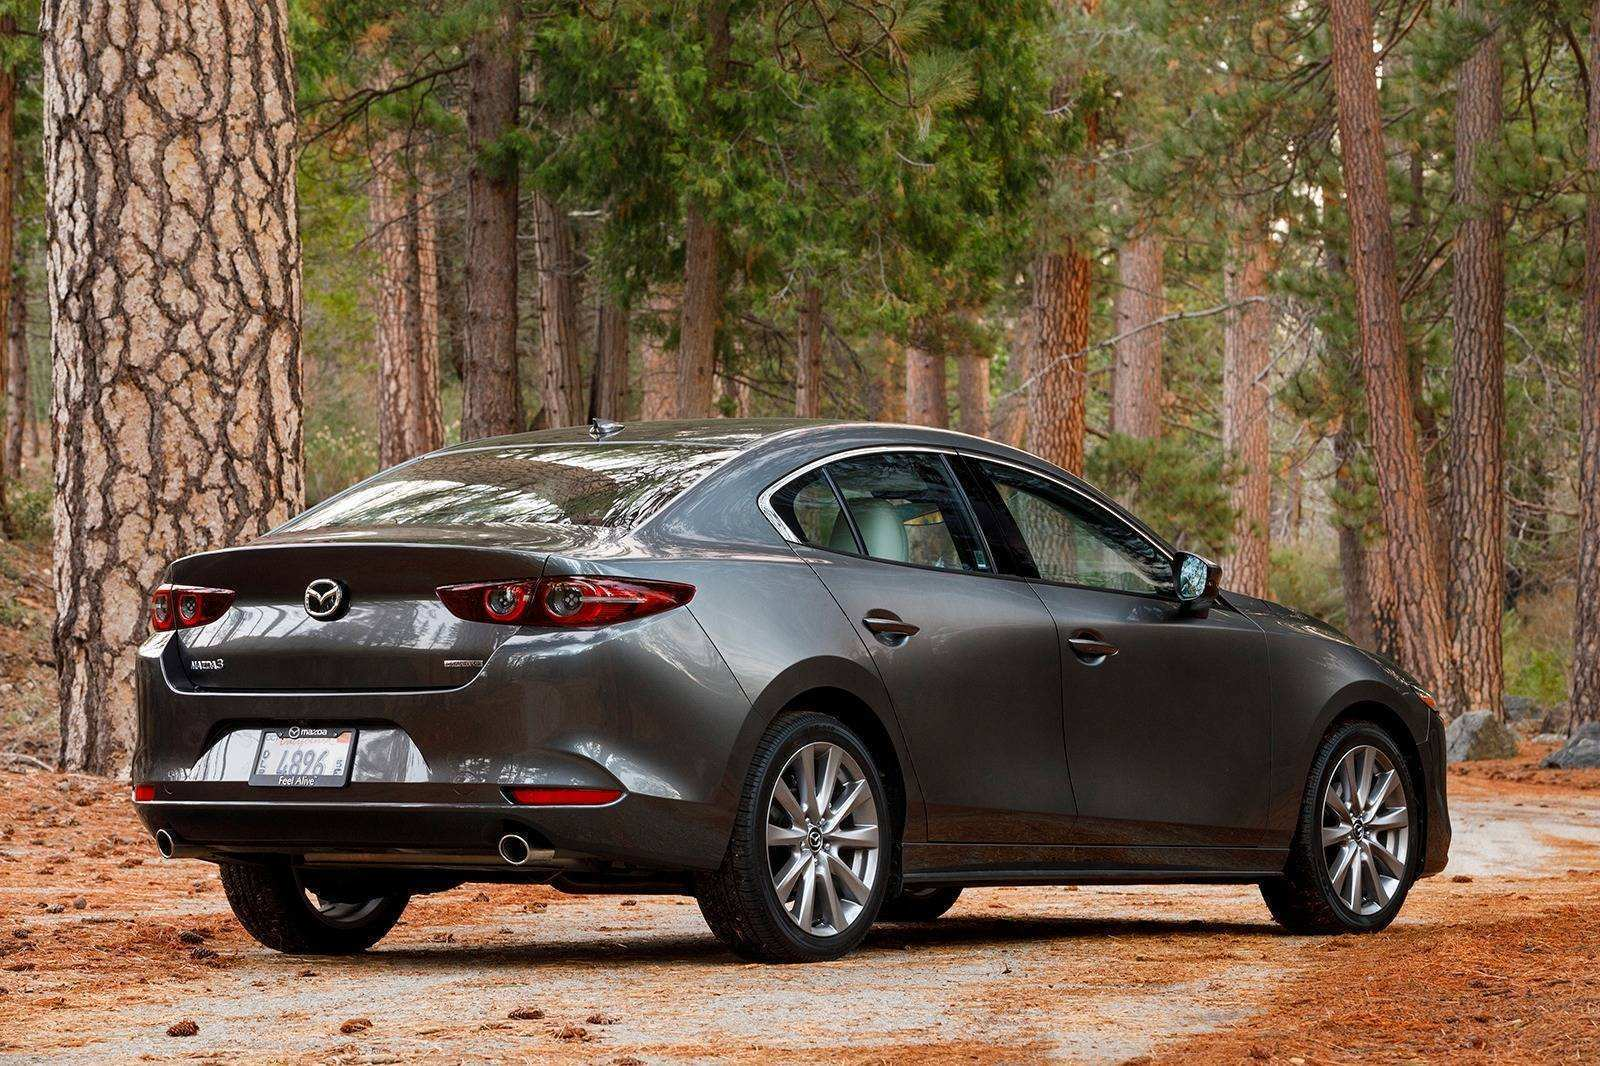 34 Great Best Mazda 2019 Hatch Specs Picture for Best Mazda 2019 Hatch Specs